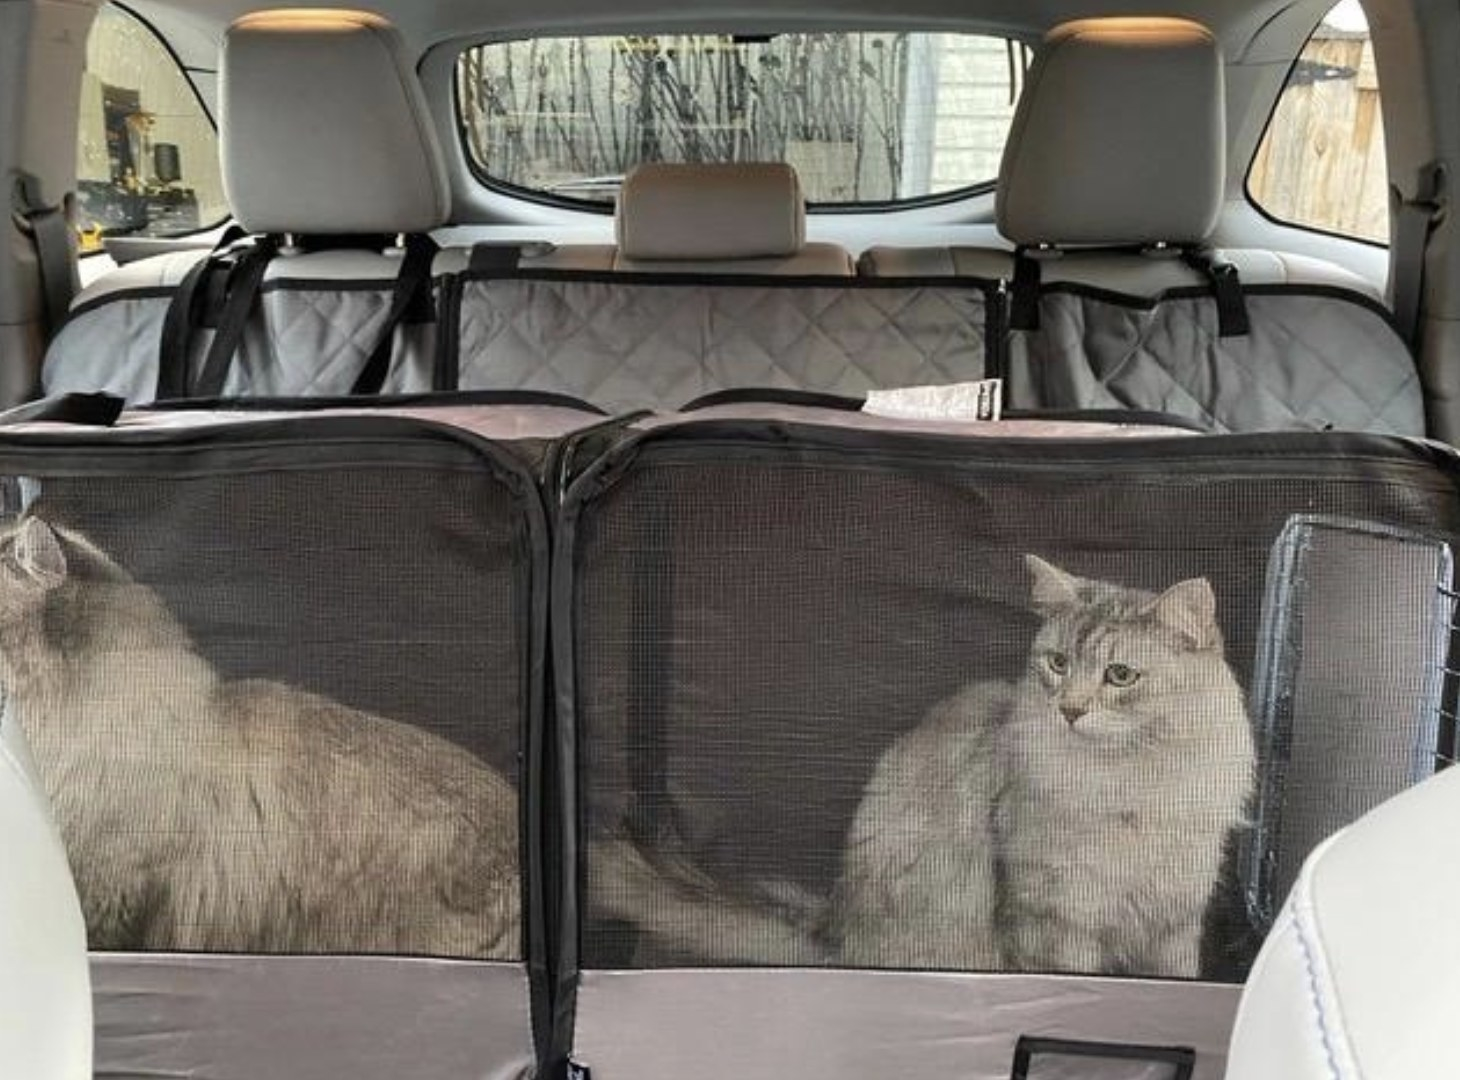 Two cats are sitting in a pet tube kennel in the backseat of a car